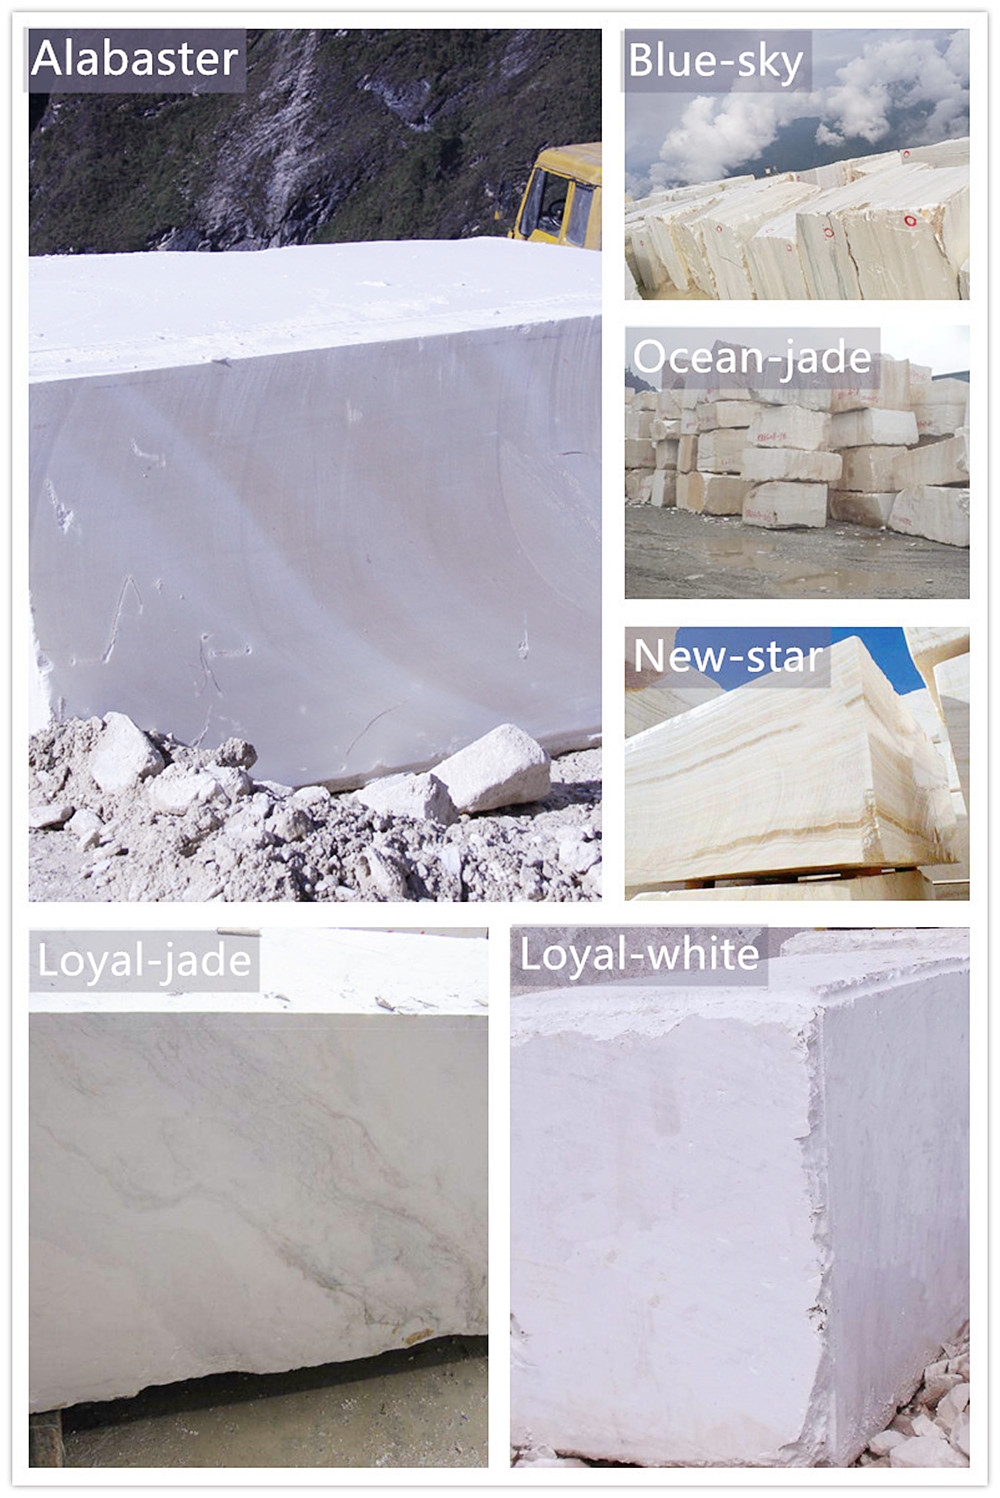 China-Alabaster-New-Star-Grey-Black-Yellow-Silver-Beige-Travertine-Limestone-Onyx-Sandstone-Granite-Slab-Block-White-Marble-for-Flooring-Wall-Tile-Countertop_副本_副本